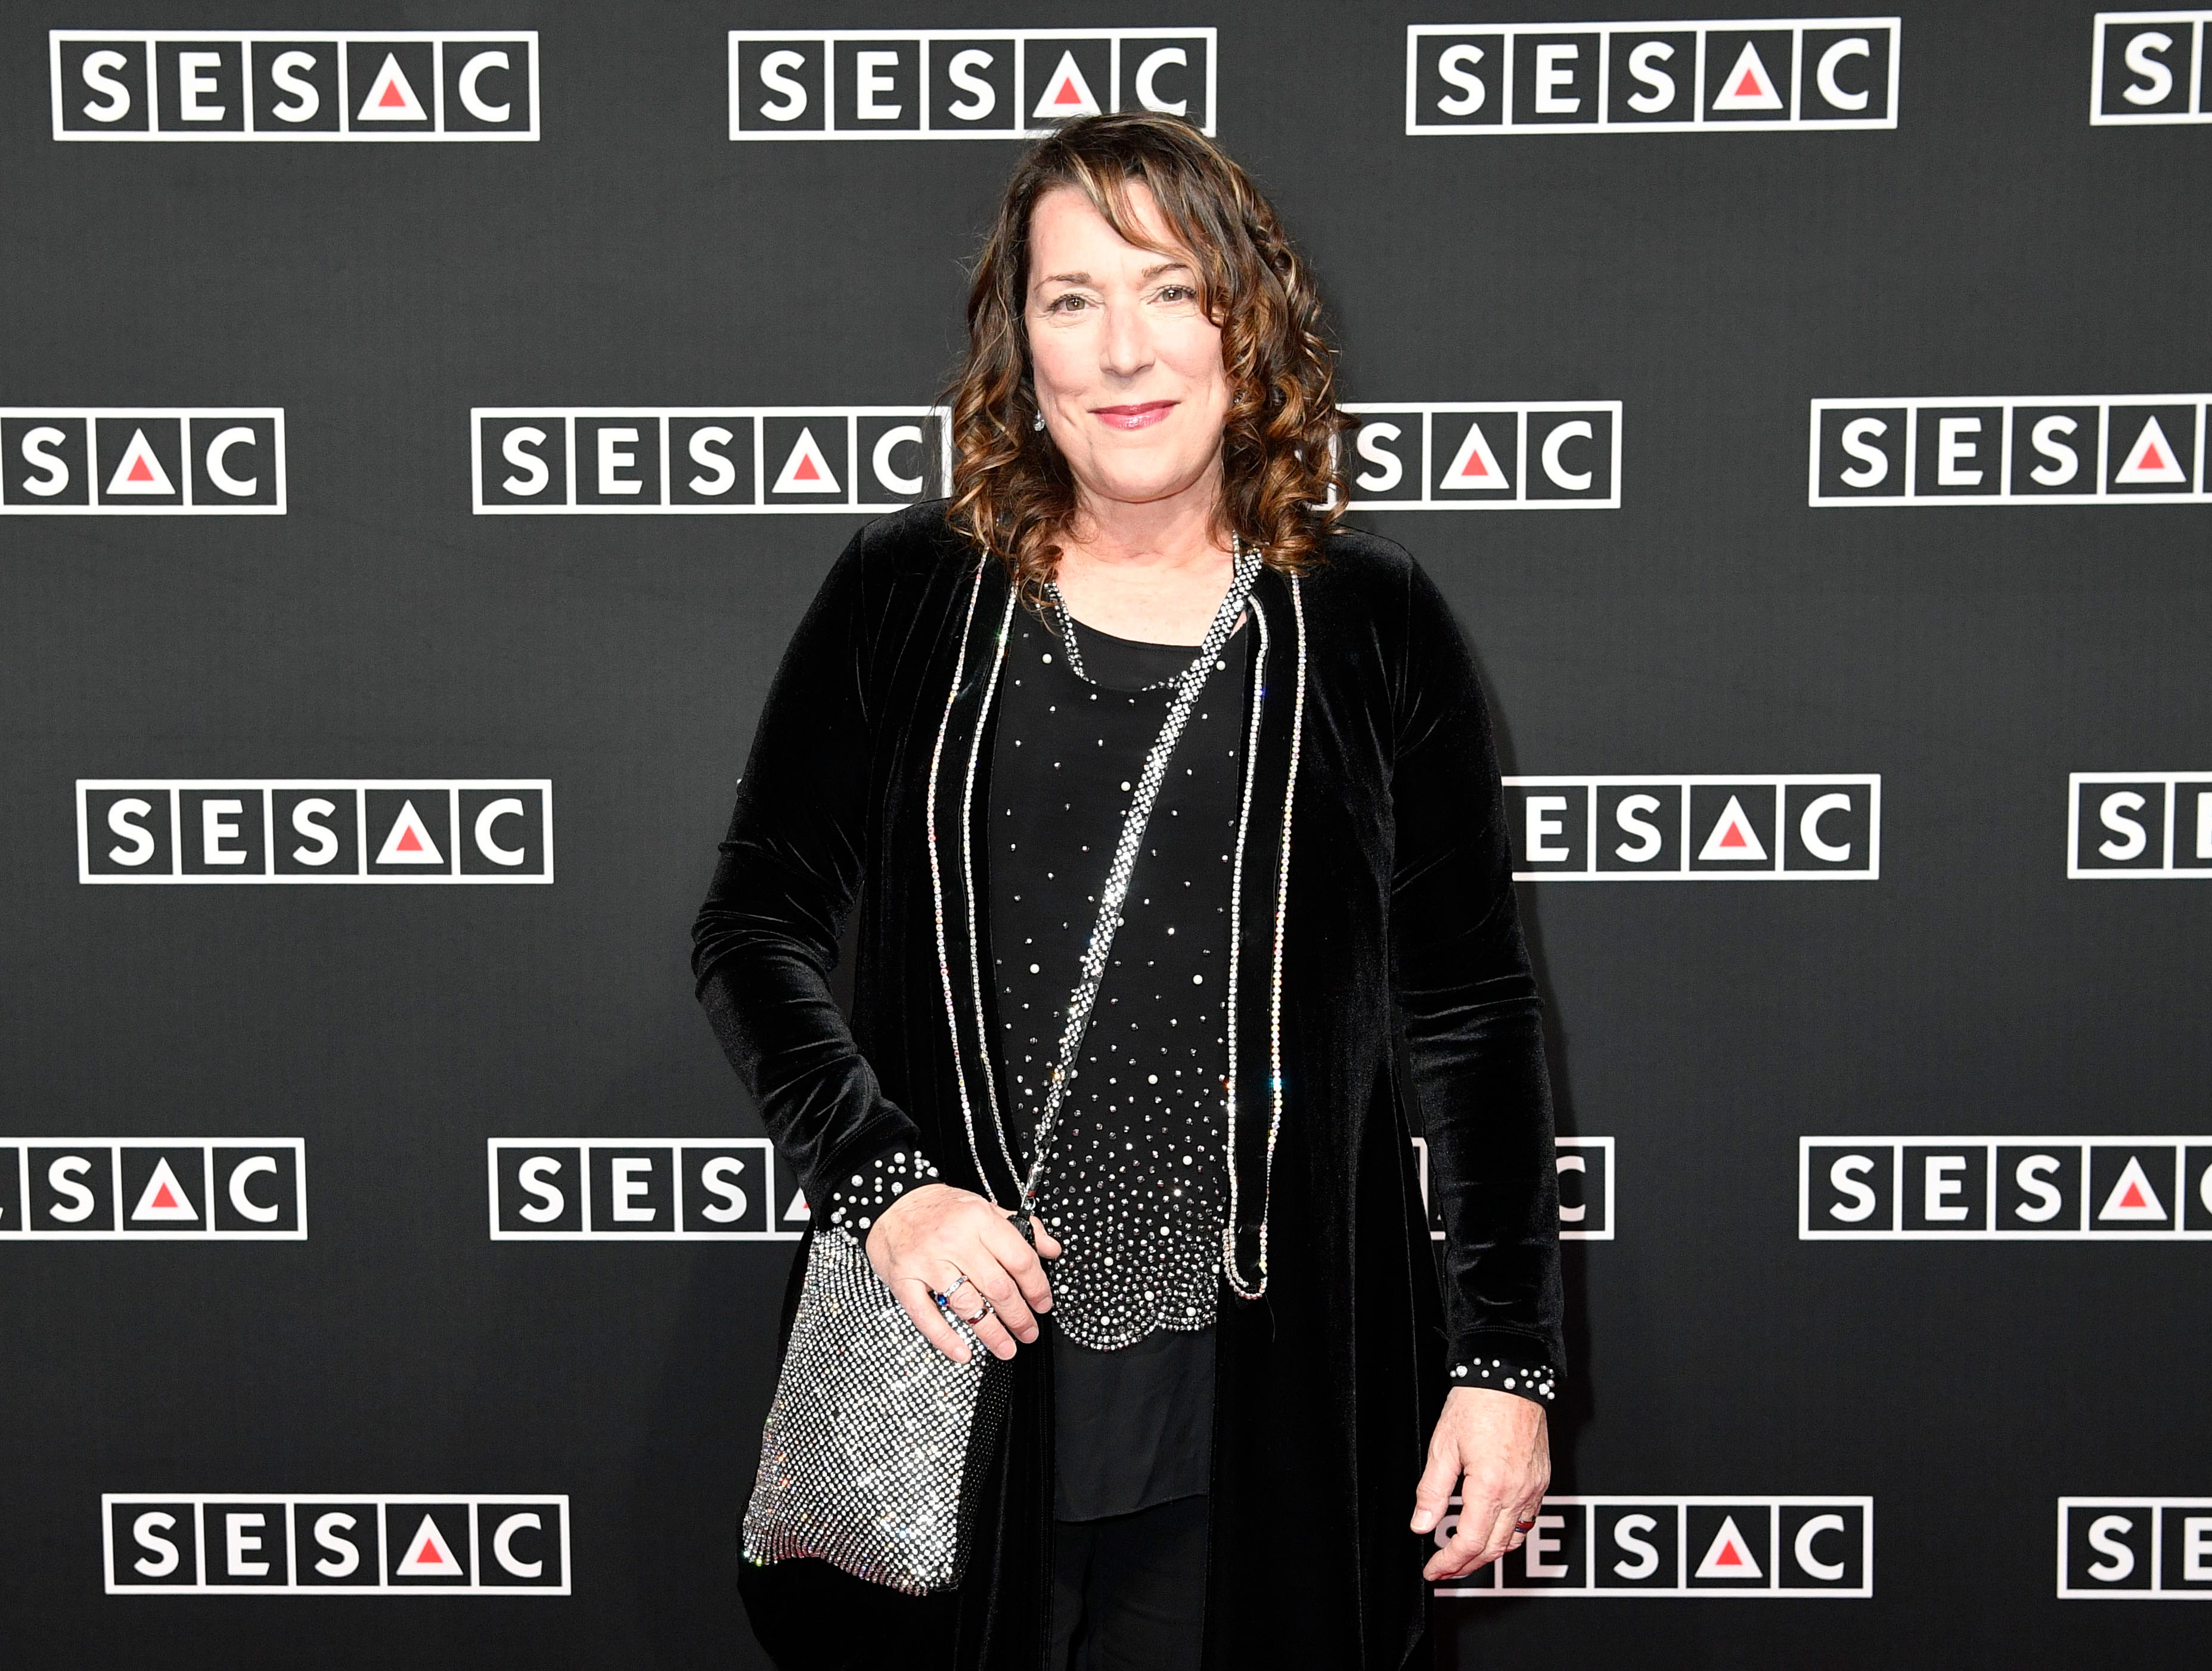 Beth Nielson Chapman on the red carpet at the SESAC Nashville Music Awards at the Country Music Hall of Fame and Museum Sunday Nov. 11, 2018, in Nashville, Tenn.